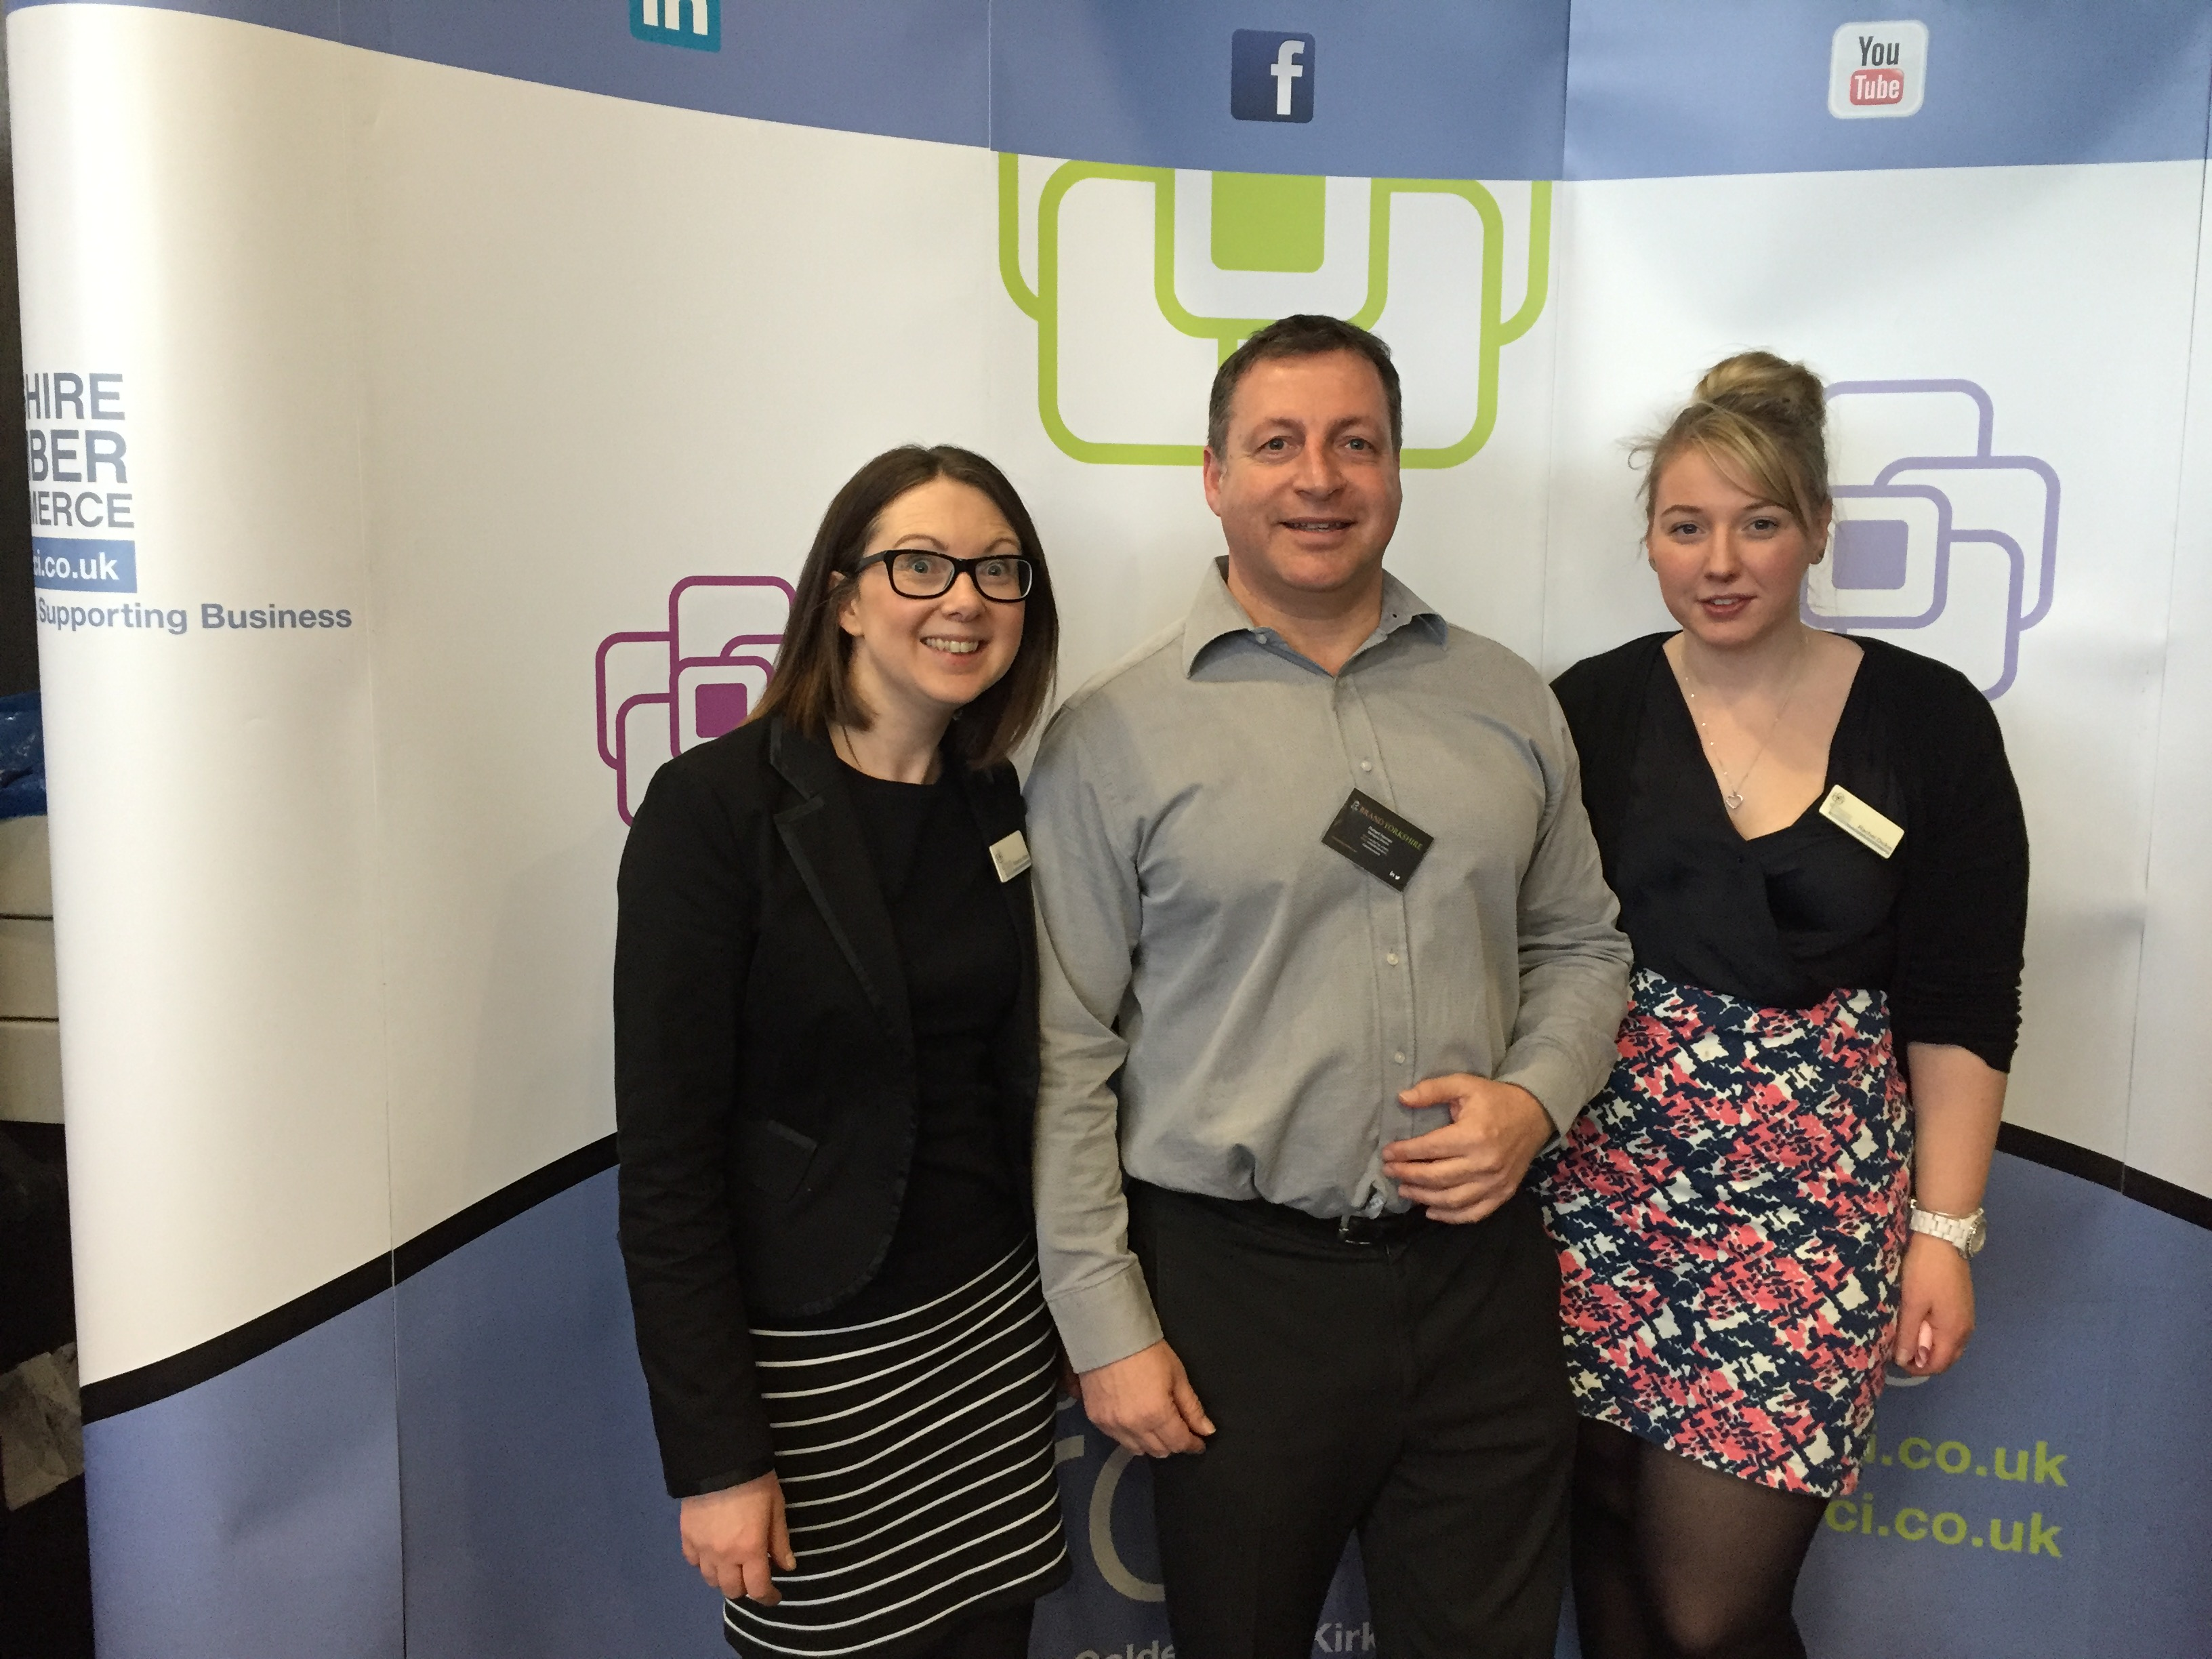 Social Progress Ltd - Kirklees Business Conference #MYCK16 - Mid Yorkshire Chamber of Commerce and Brand Yorkshire - Rachel Dickie, Rebecca Walker and Richard Norman